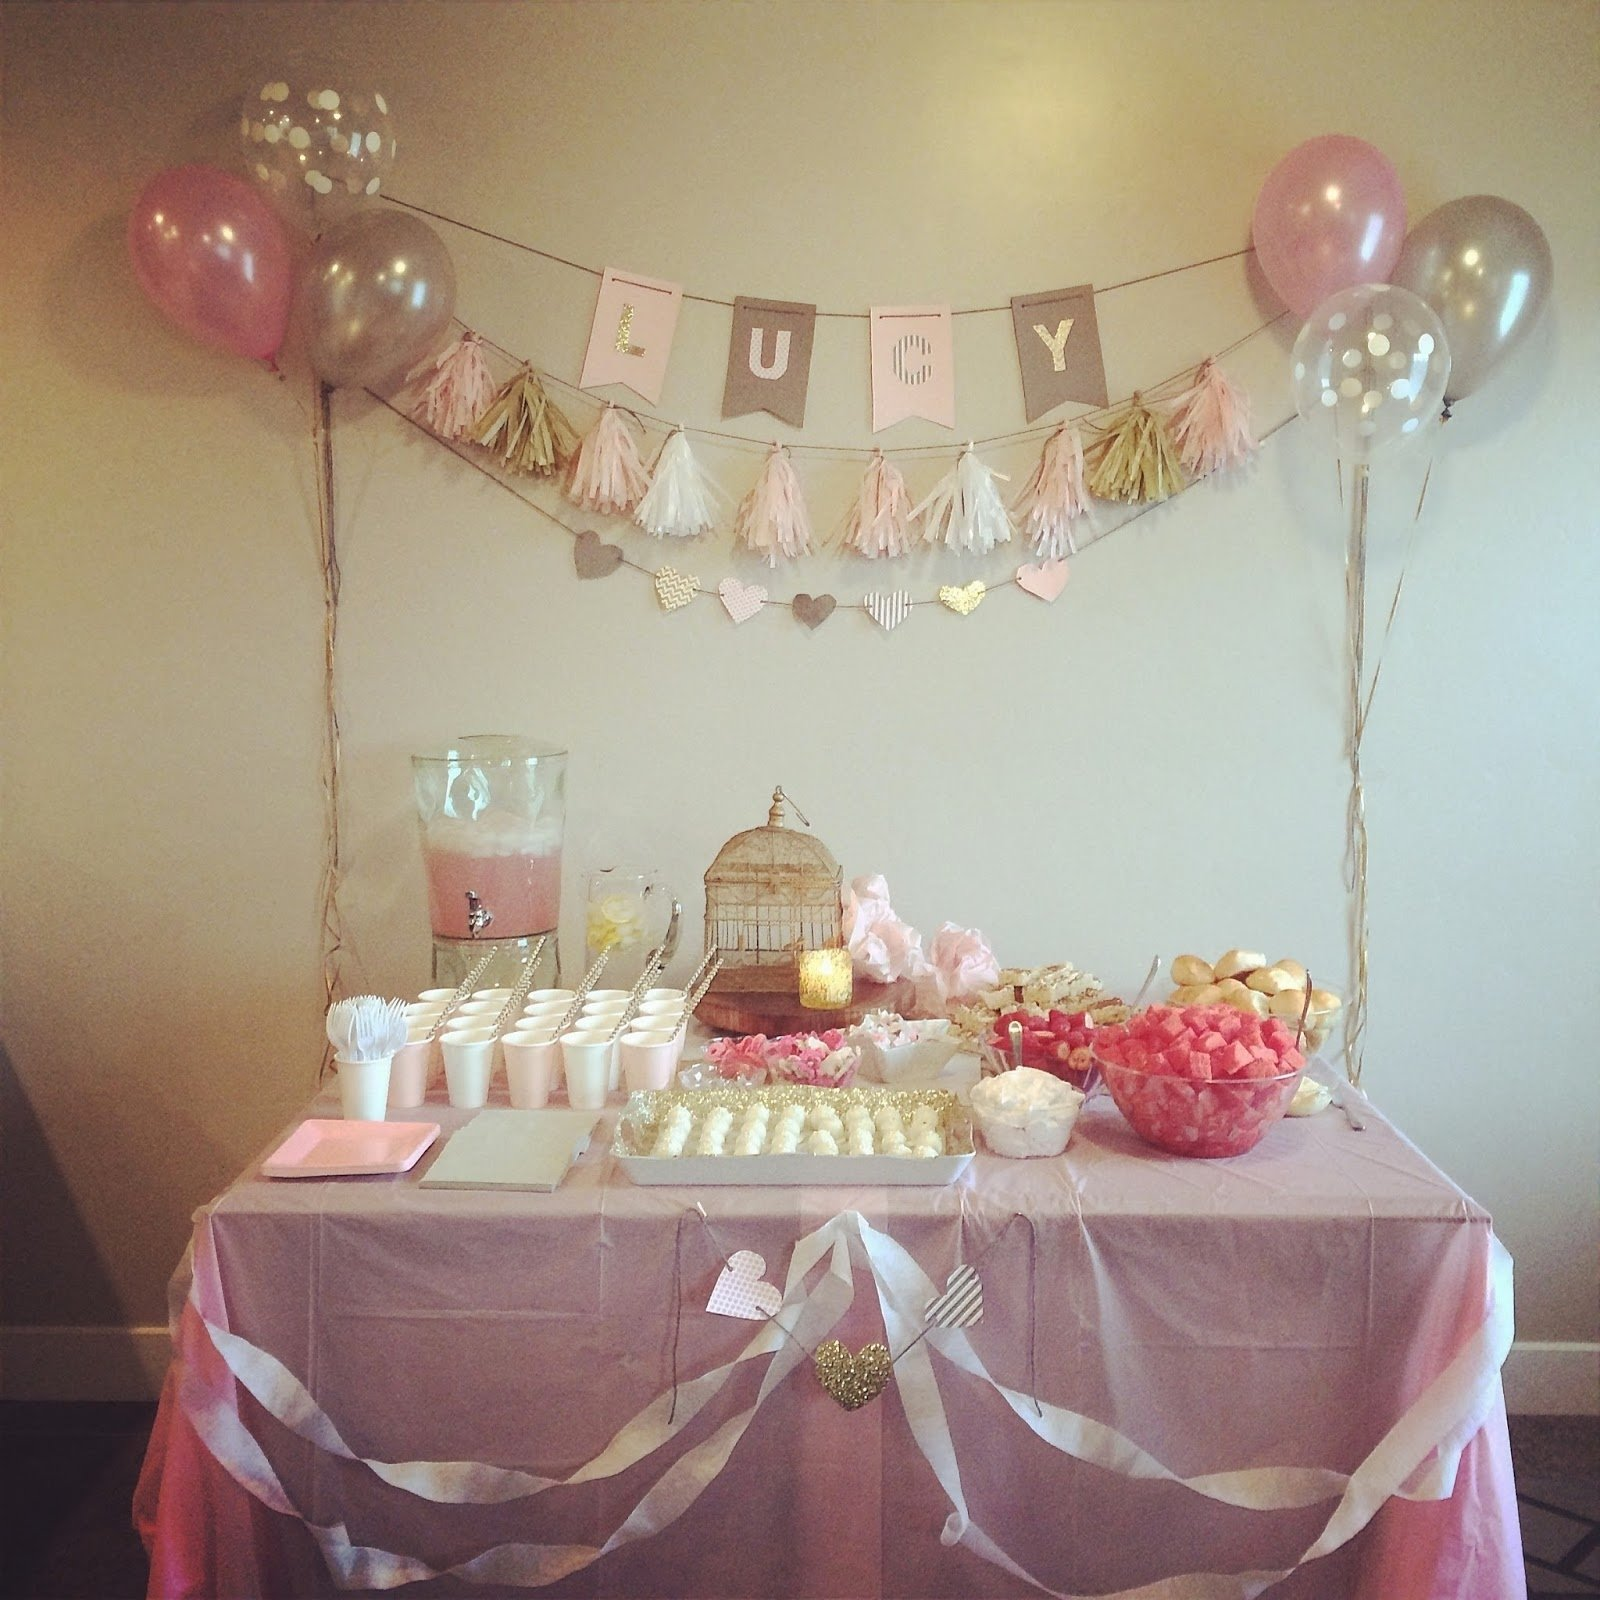 10 Lovely Baby Shower On A Budget Ideas baby shower on budget how to throw a baby shower for under 80